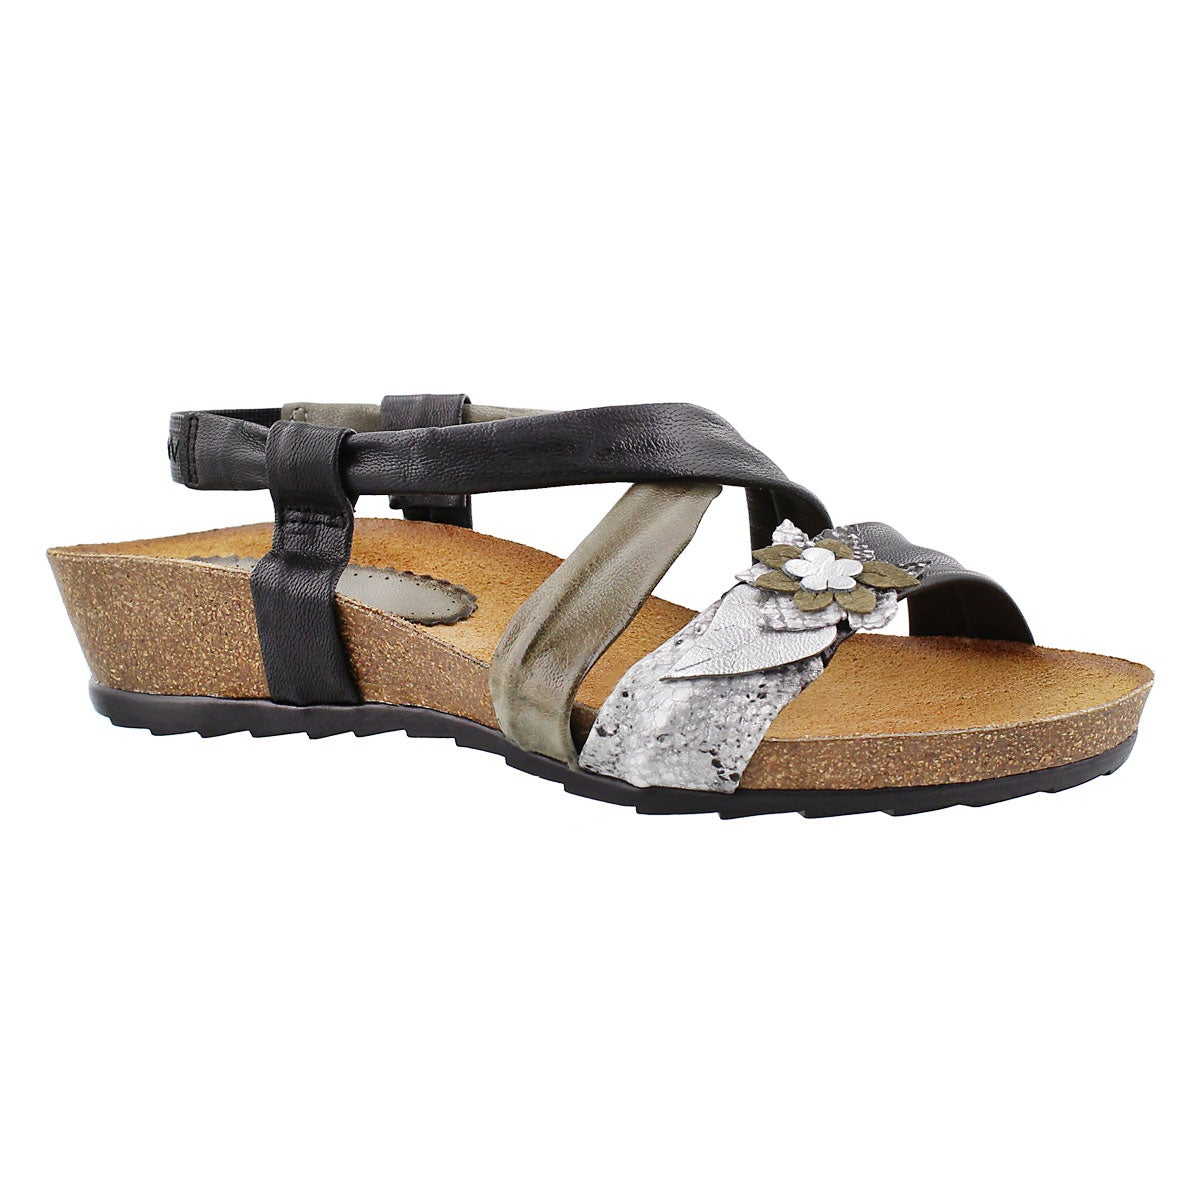 Lds Madison black casual wedge sandal